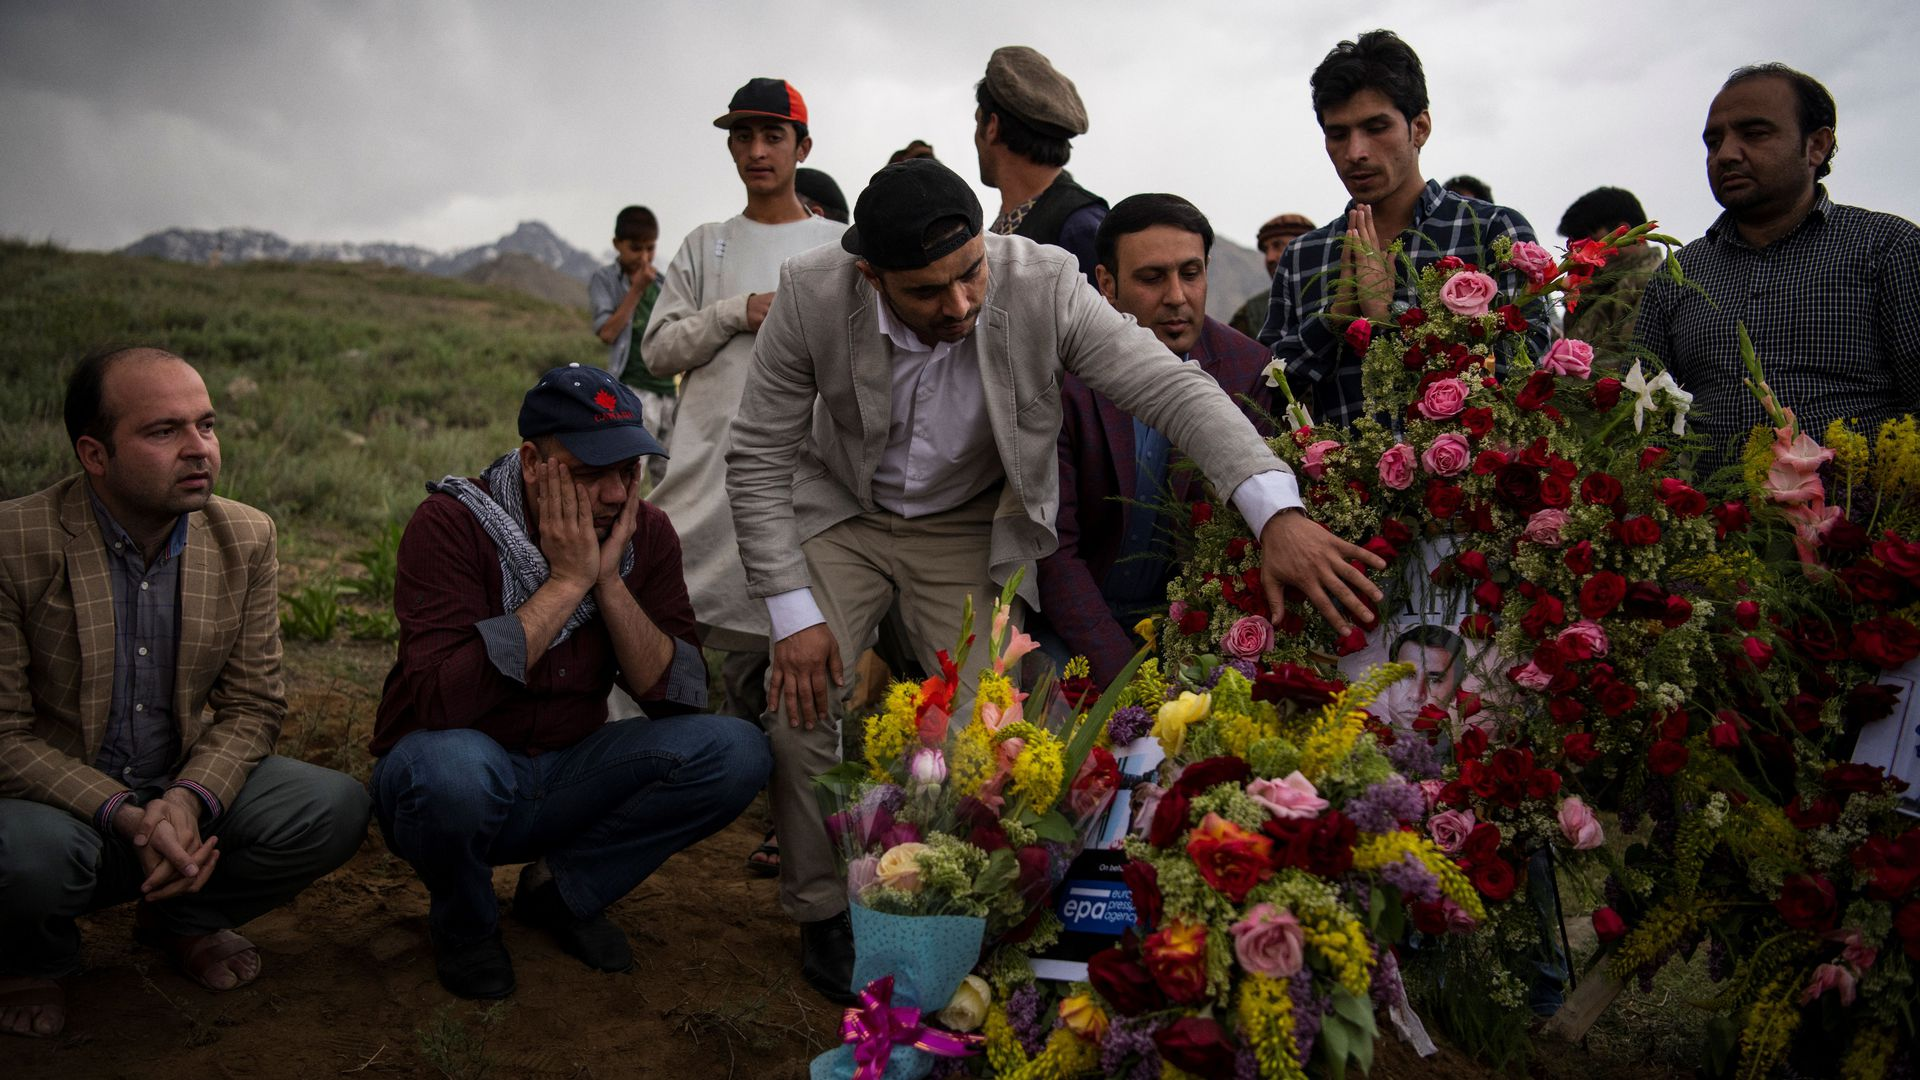 Friends and relatives of Agence France Presse Afghanistan Chief Photographer Shah Marai Faizi gather at his burial in Gul Dara, Kabul on April 30, 2018.